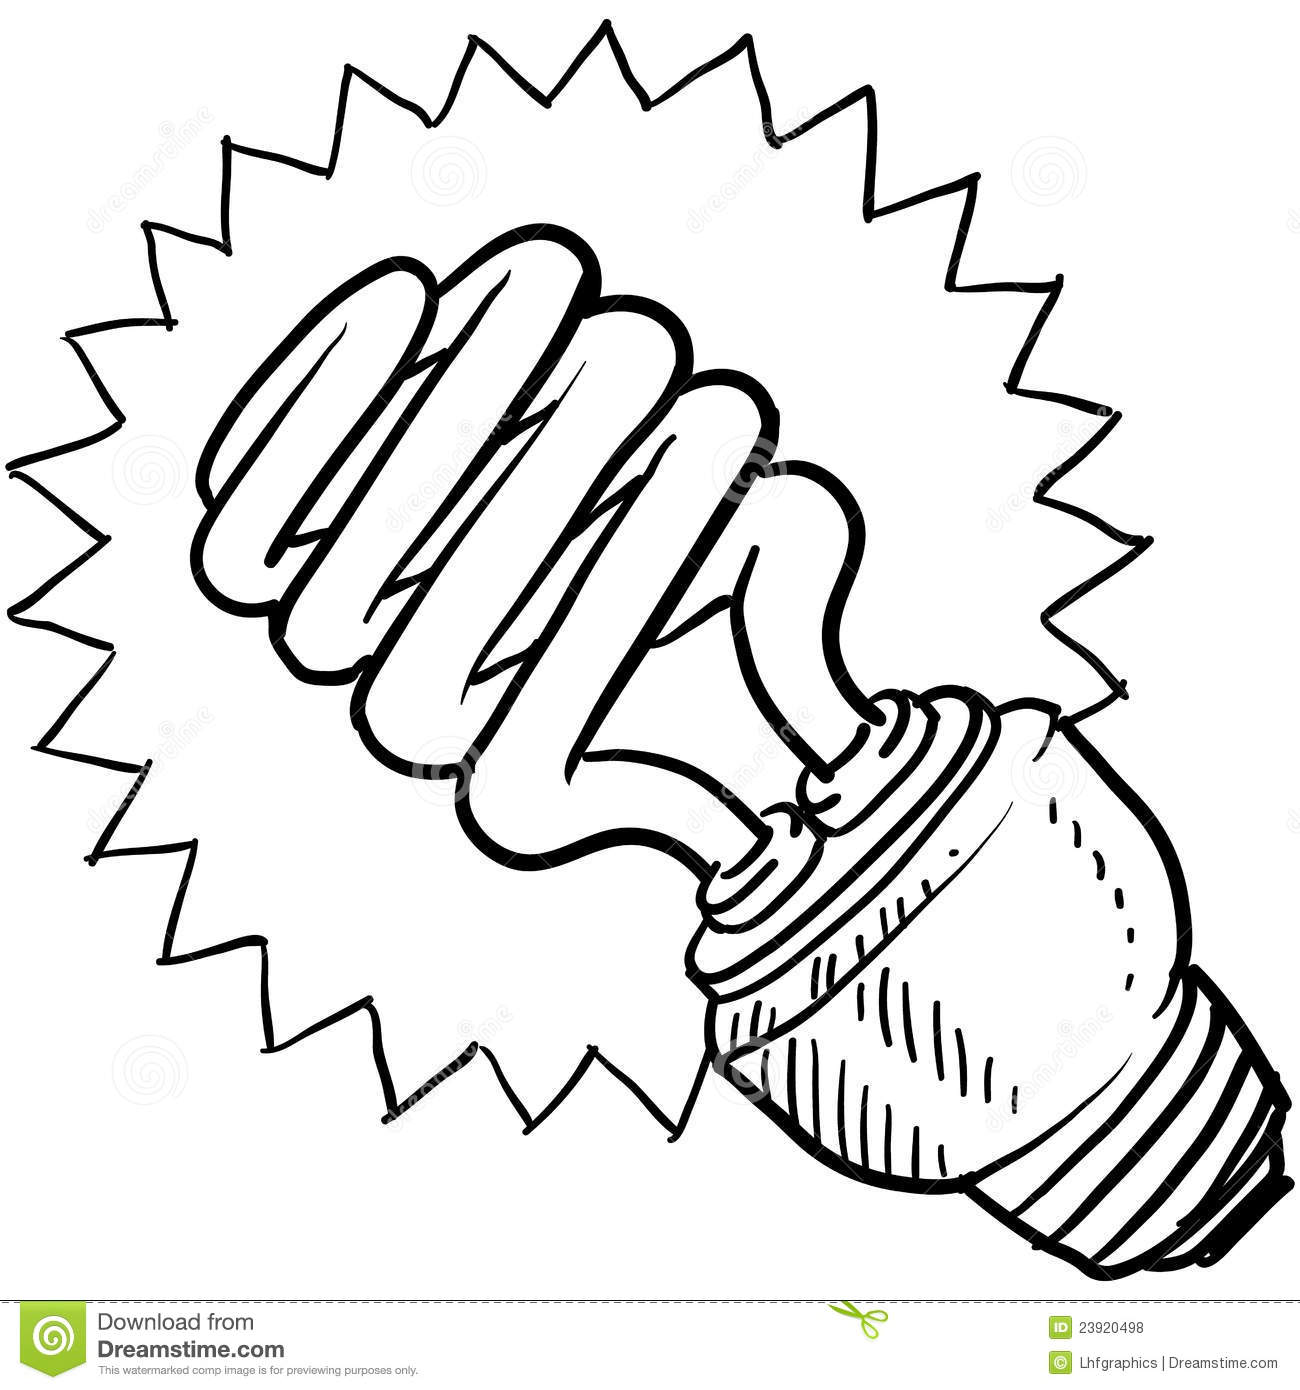 Compact Fluorescent Light Bulb Sketch Royalty Free Stock ...